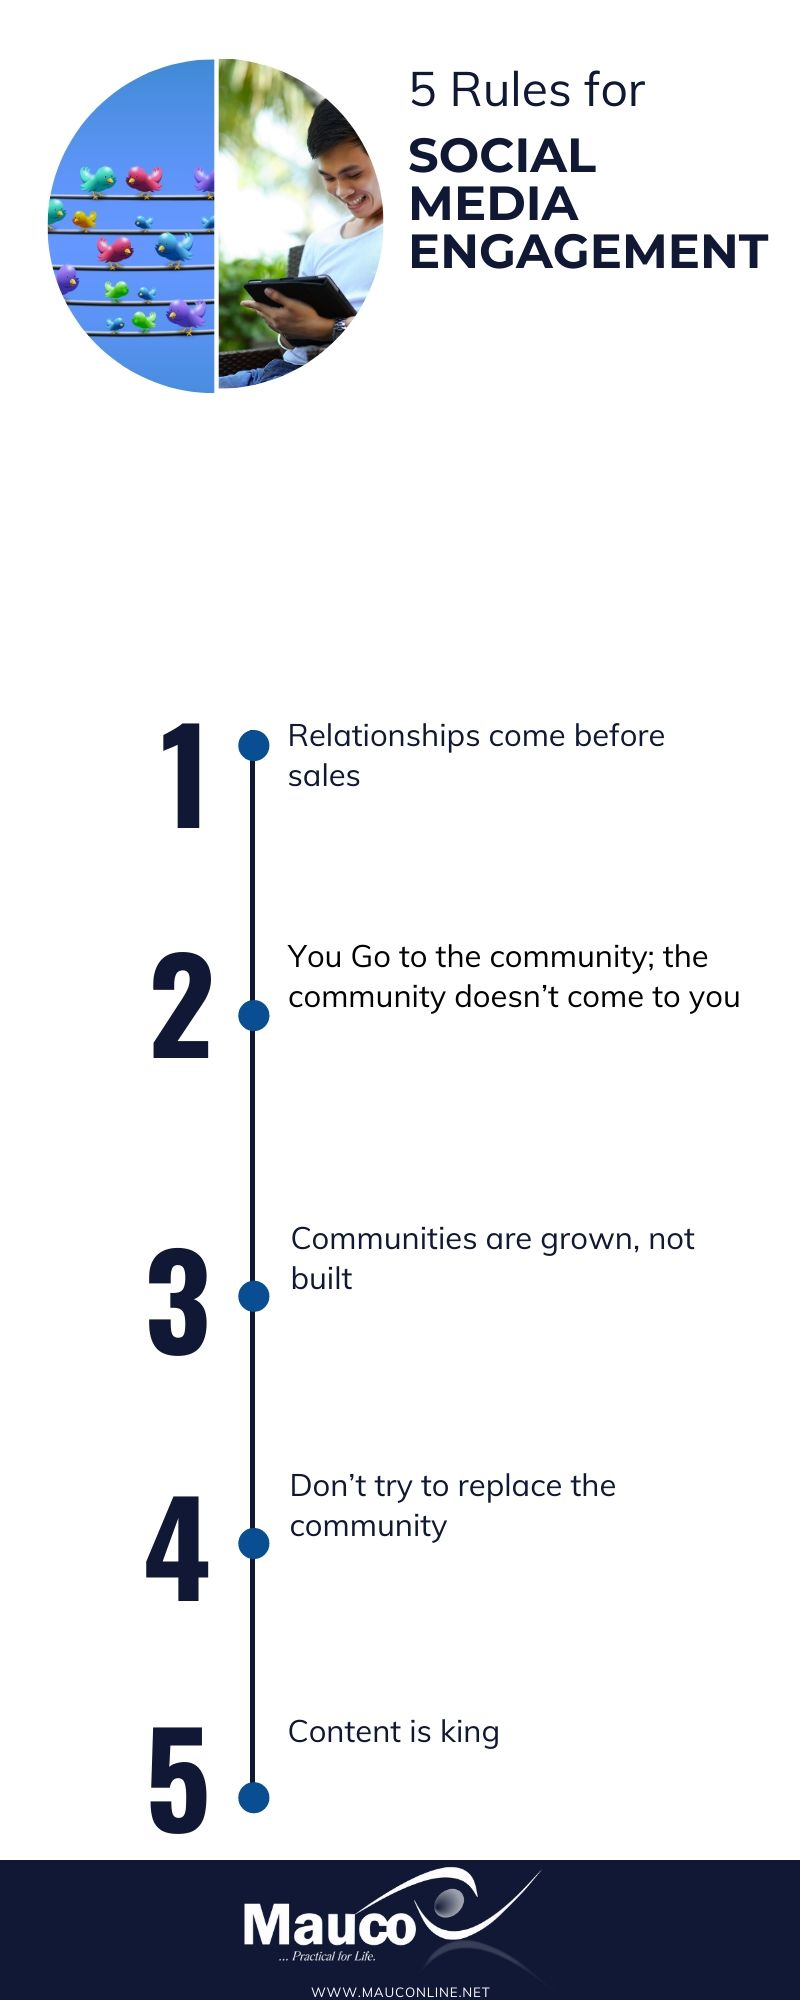 5 Rules of Social Media Engagement Infographic